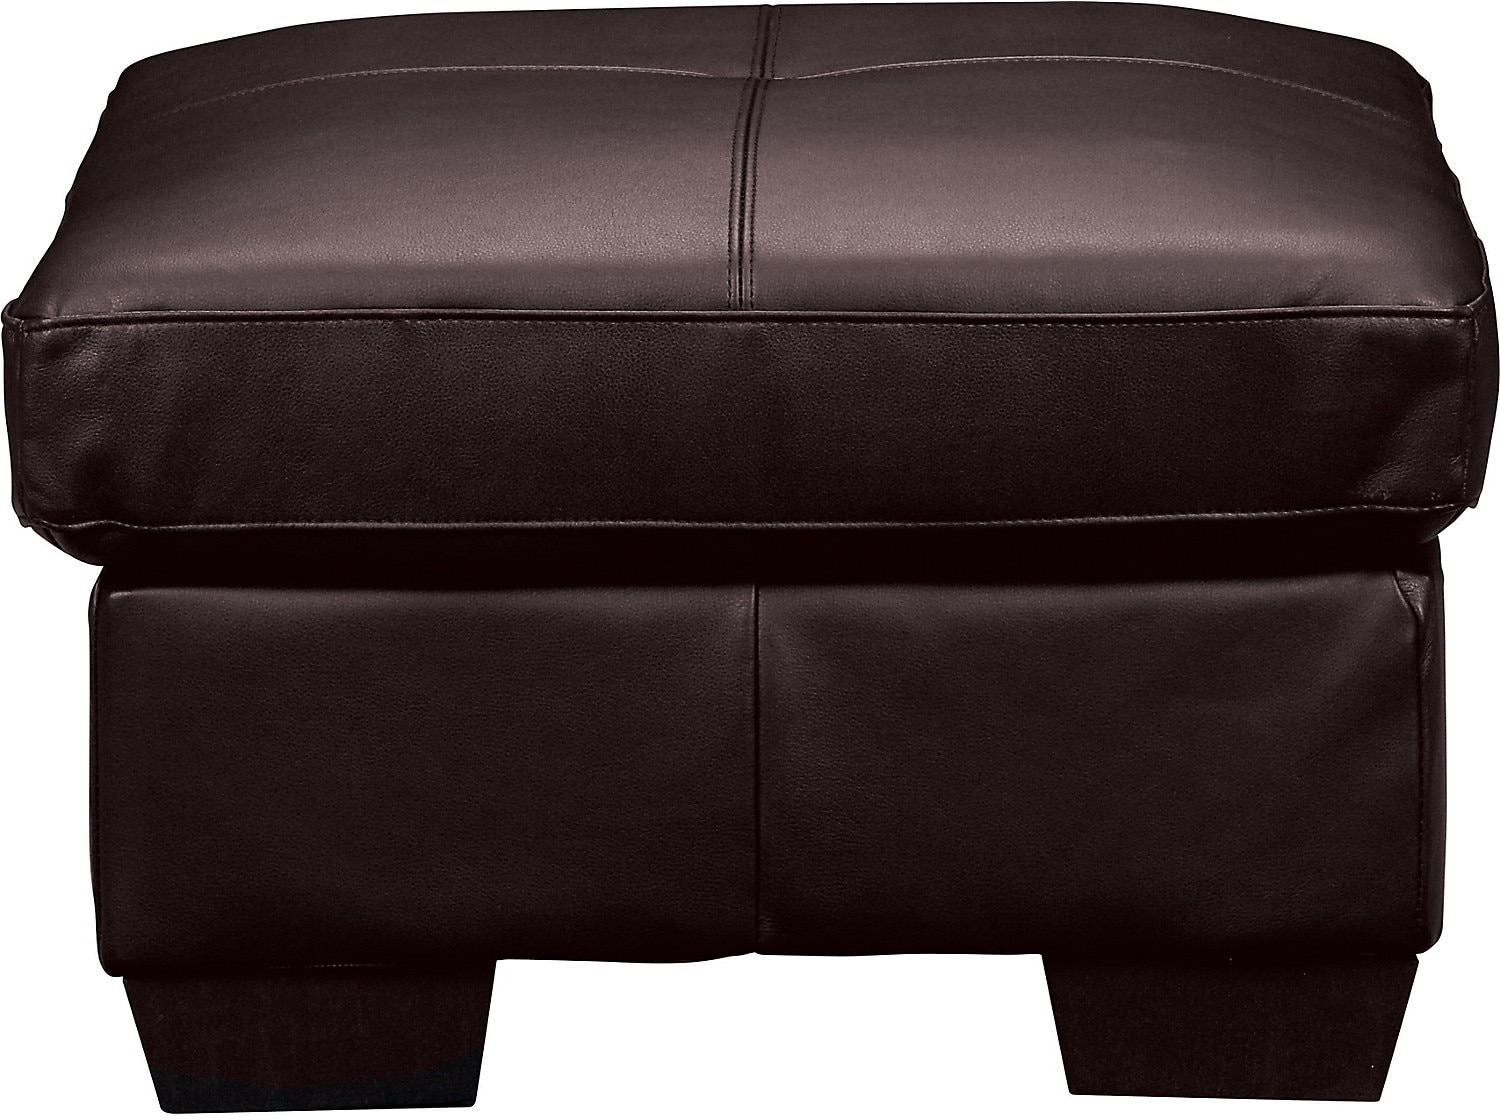 Living Room Furniture - Costa Brown Bonded Leather Ottoman